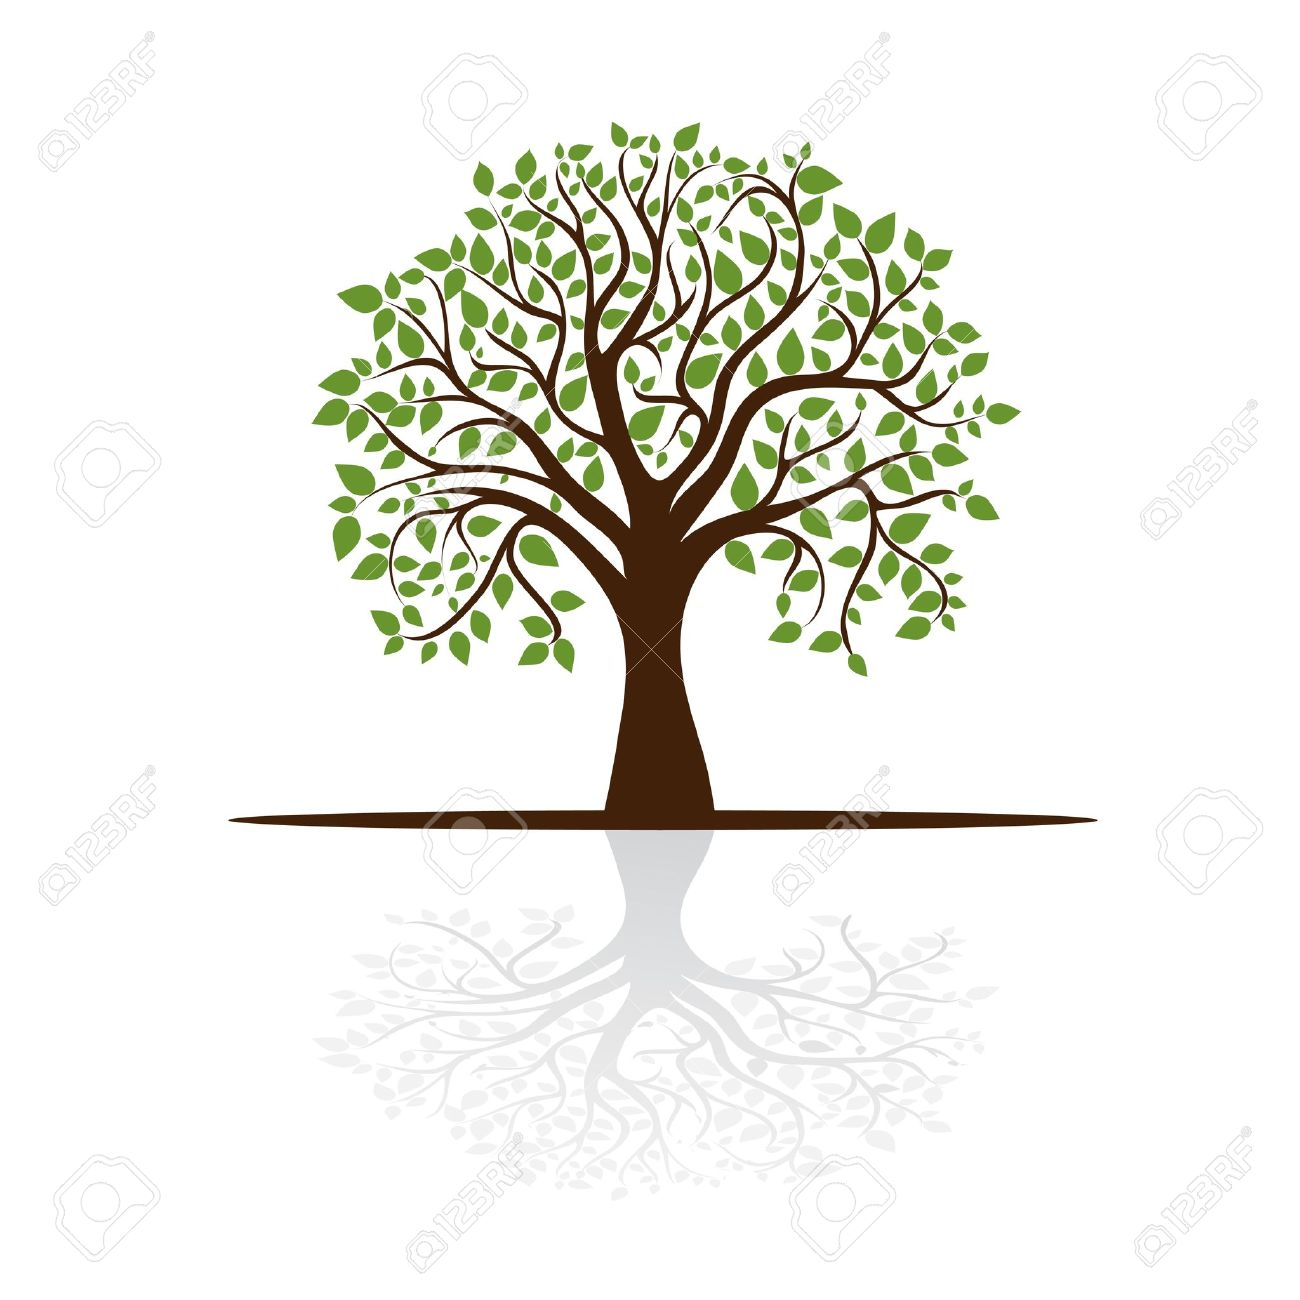 Tree Casts A Shadow, A Place For Text, Royalty Free Cliparts.